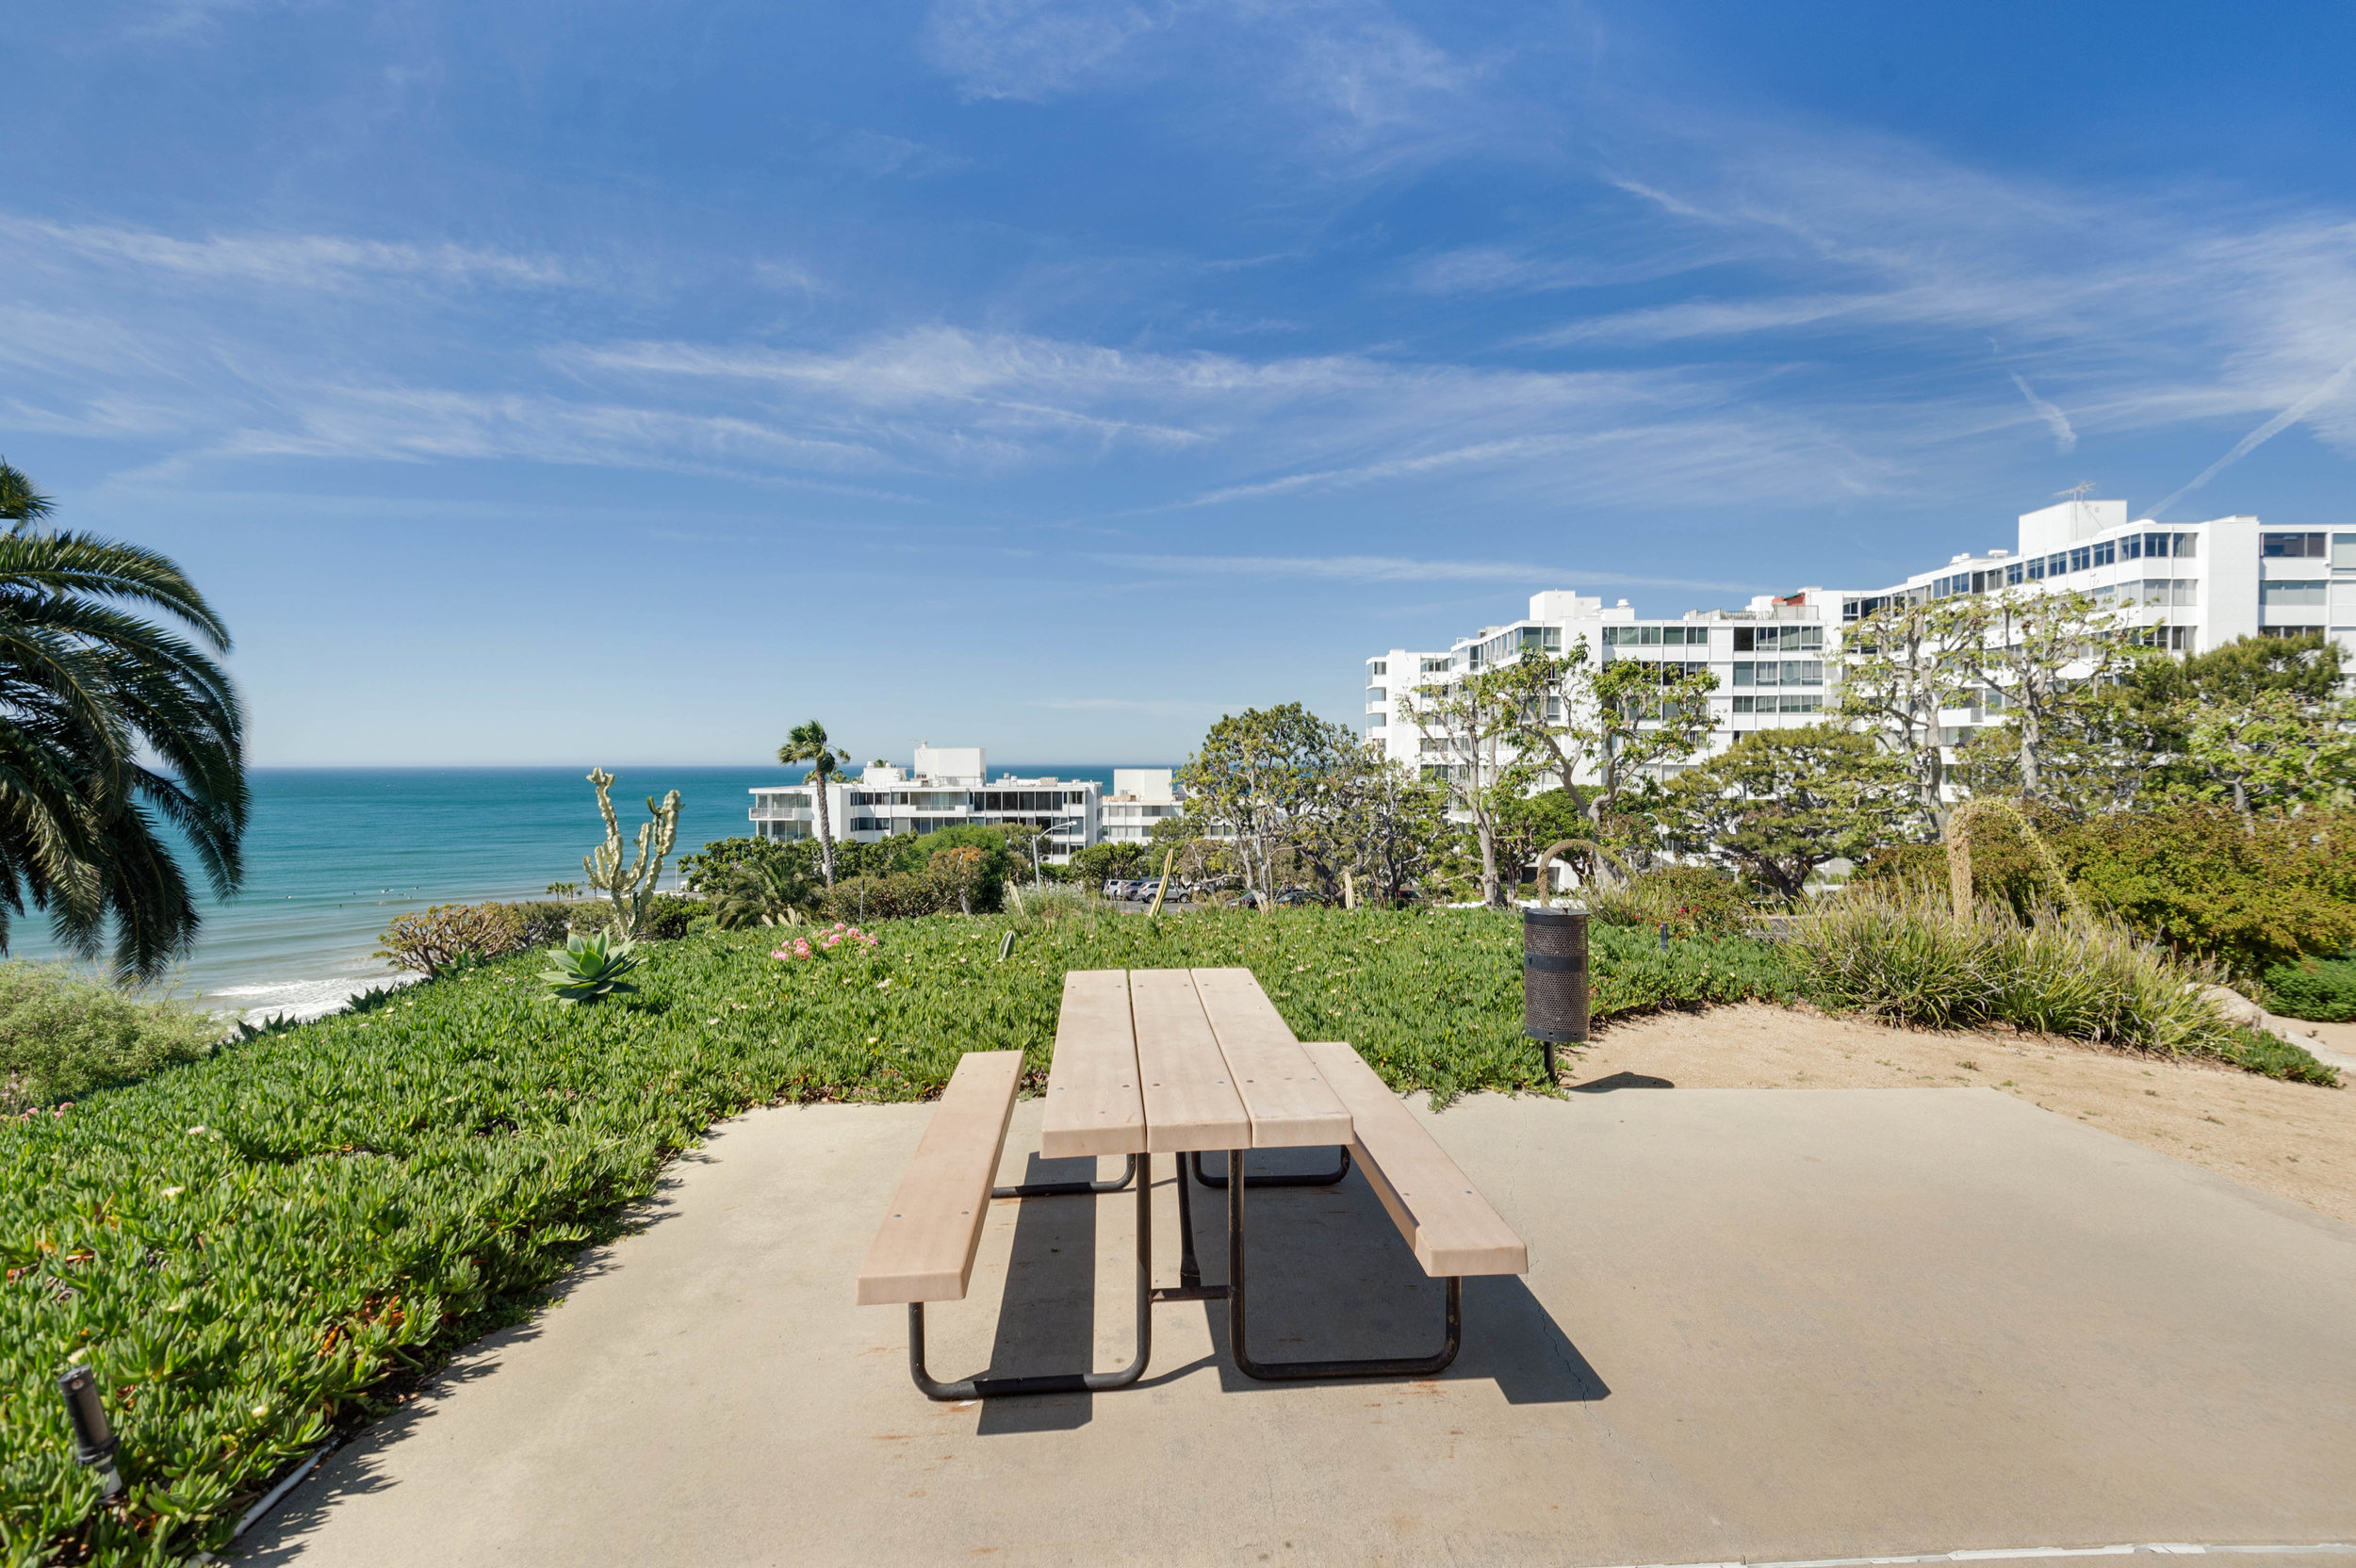 014 Park 17350 West Sunset Boulevard For Sale Lease The Malibu Life Team Luxury Real Estate.jpg